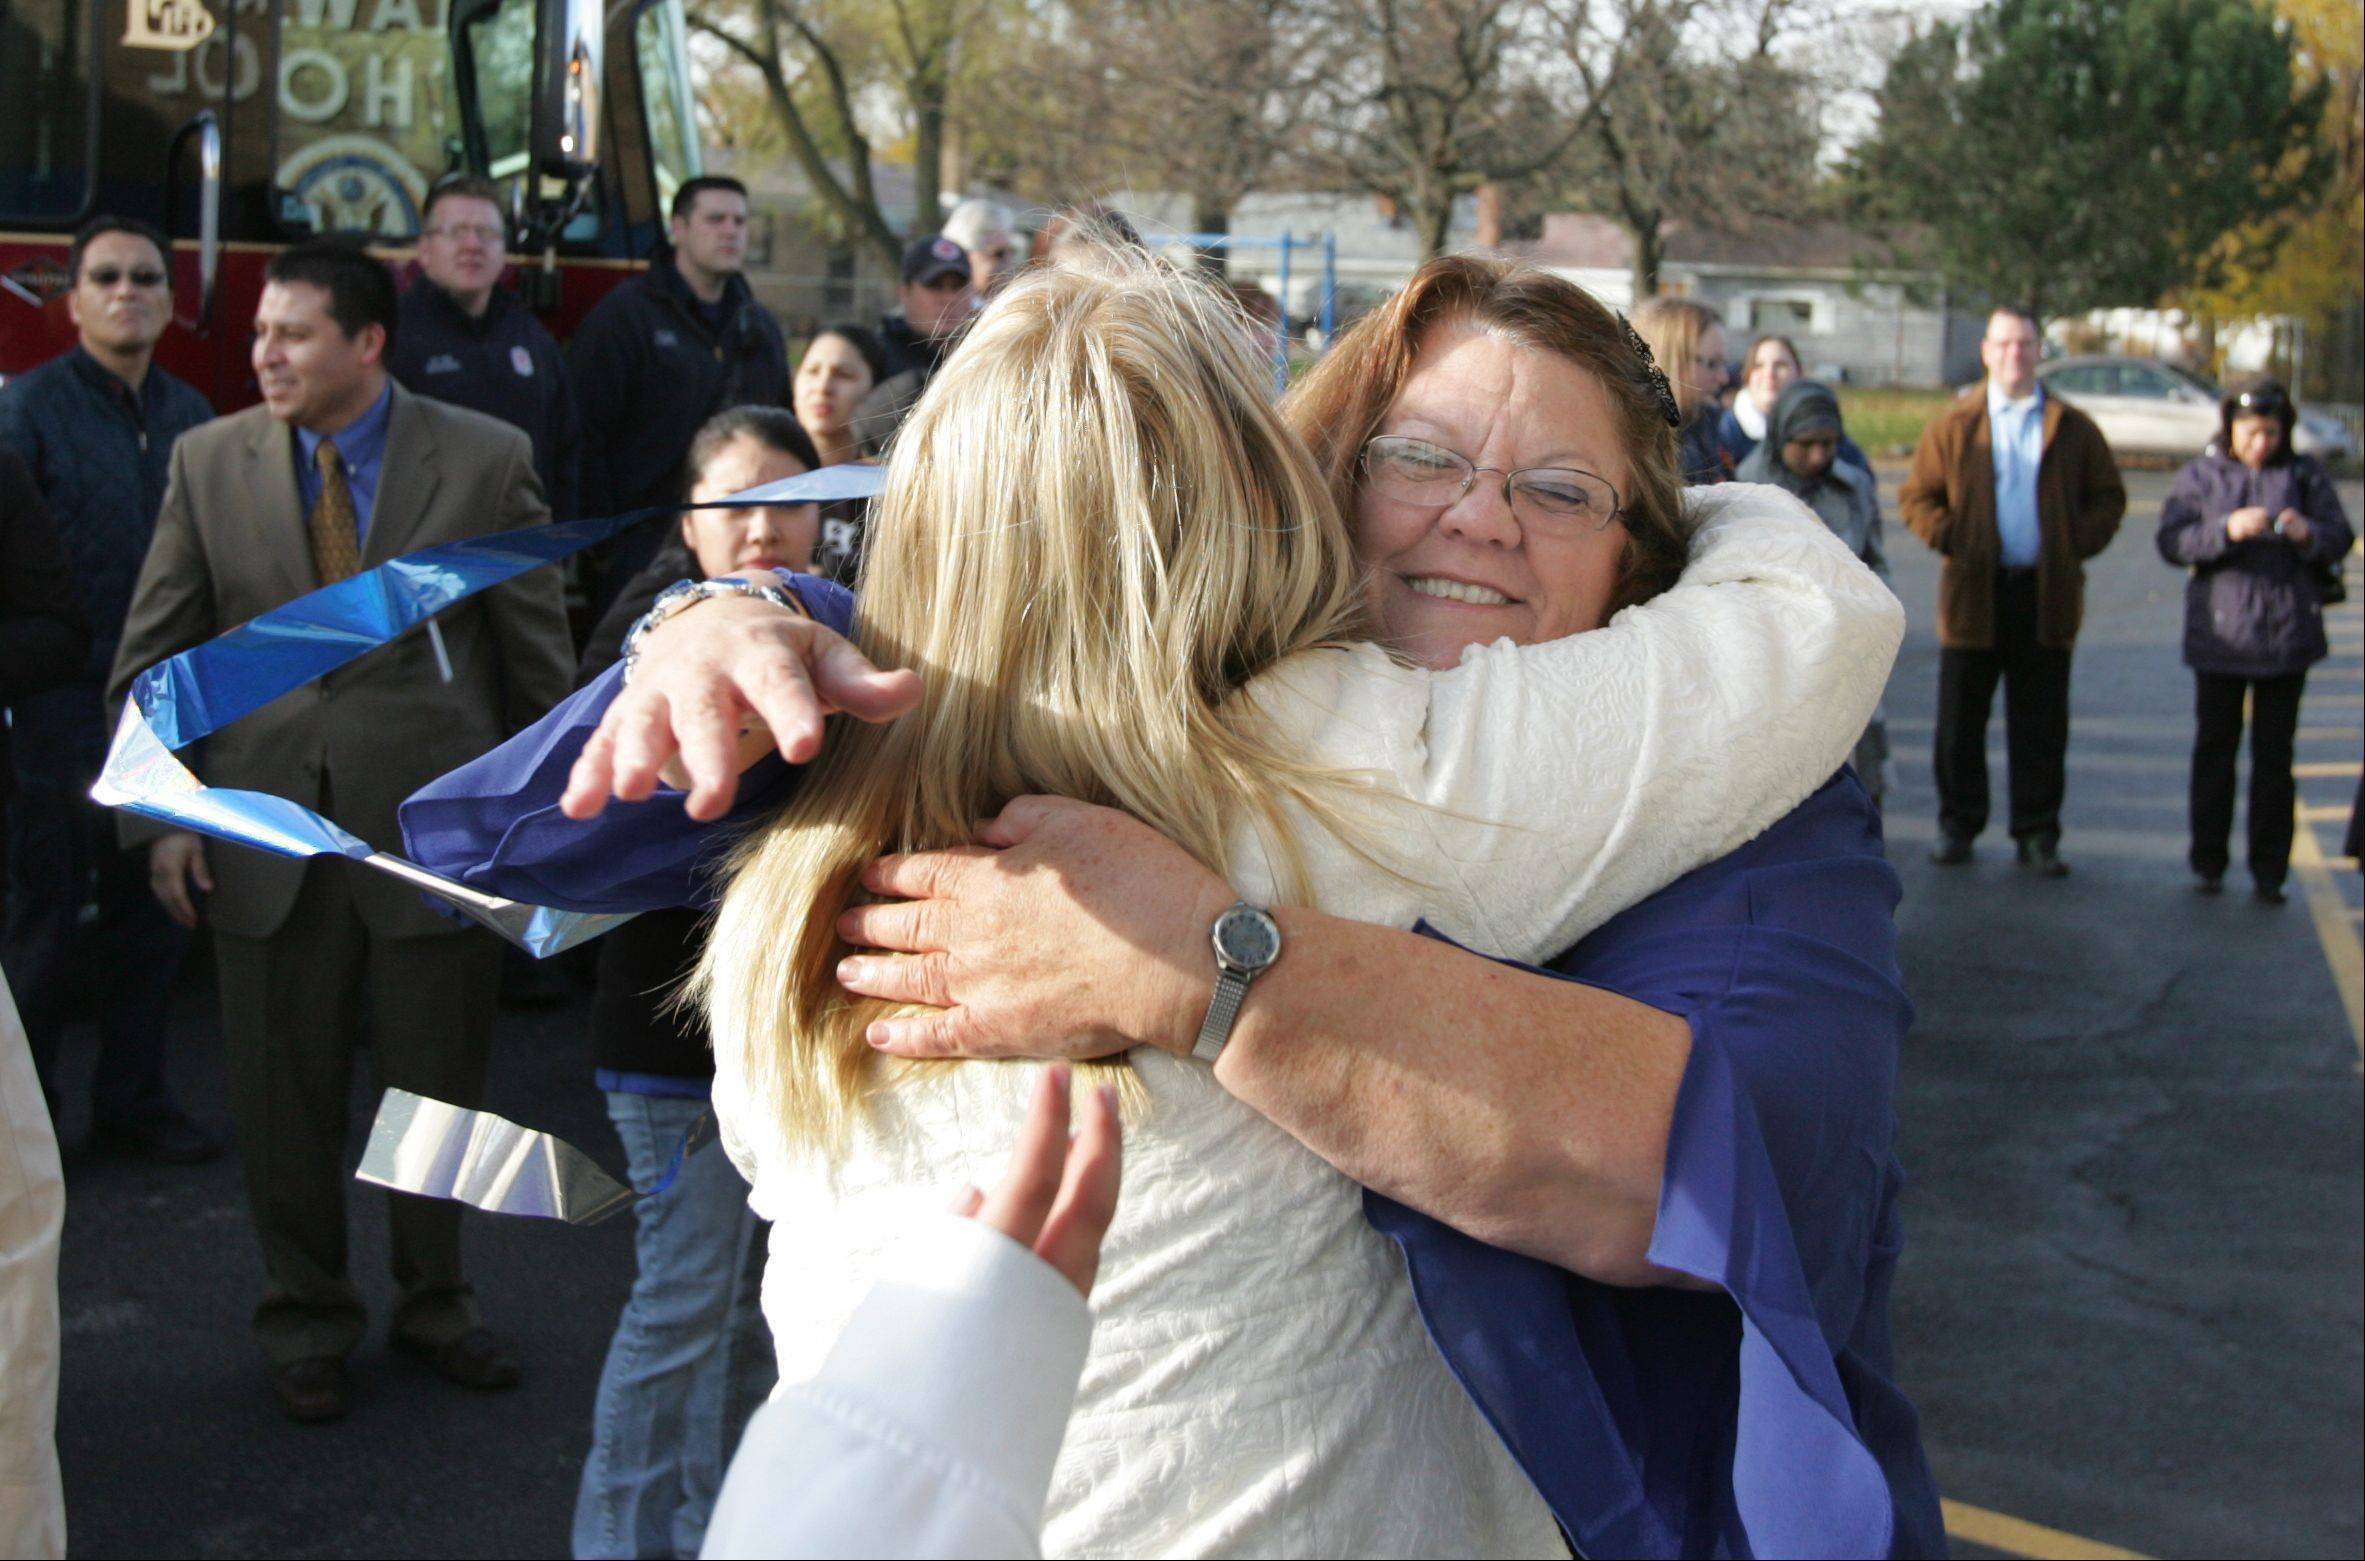 Mohawk Elementary School teacher Jean Walsh, right, arrived at the school Wednesday in a police and fire procession after a two-day trip to Washington, D.C., to receive the 2011 National Blue Ribbon Award from the U.S. Department of Education.